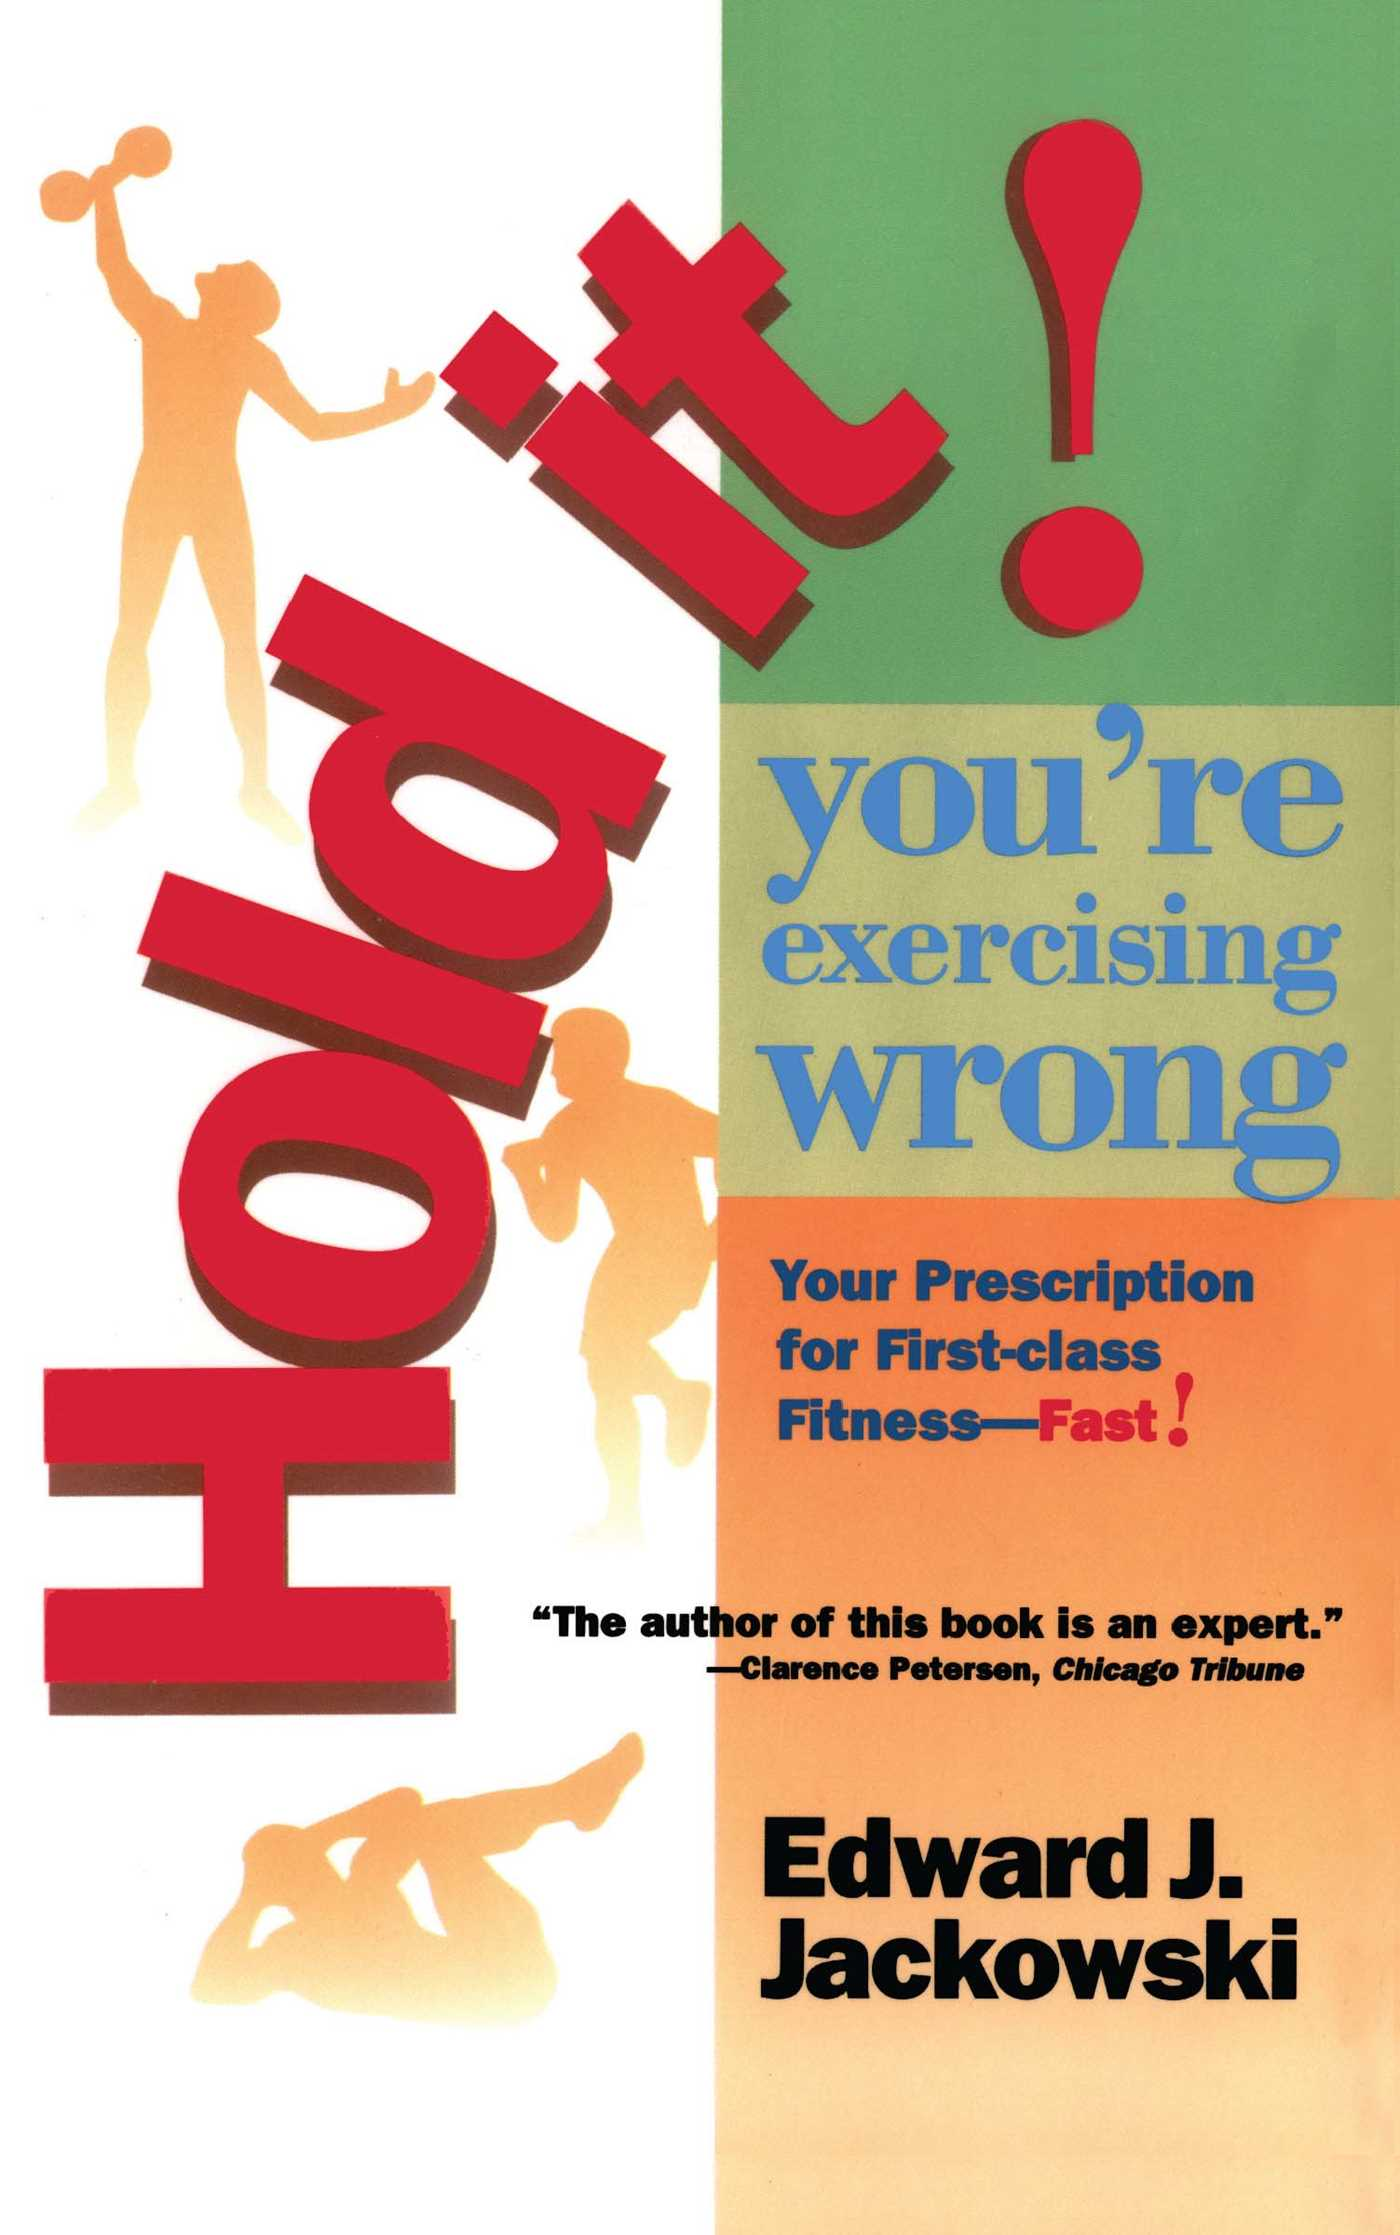 Hold-it-youre-exercizing-wrong-9781439146484_hr